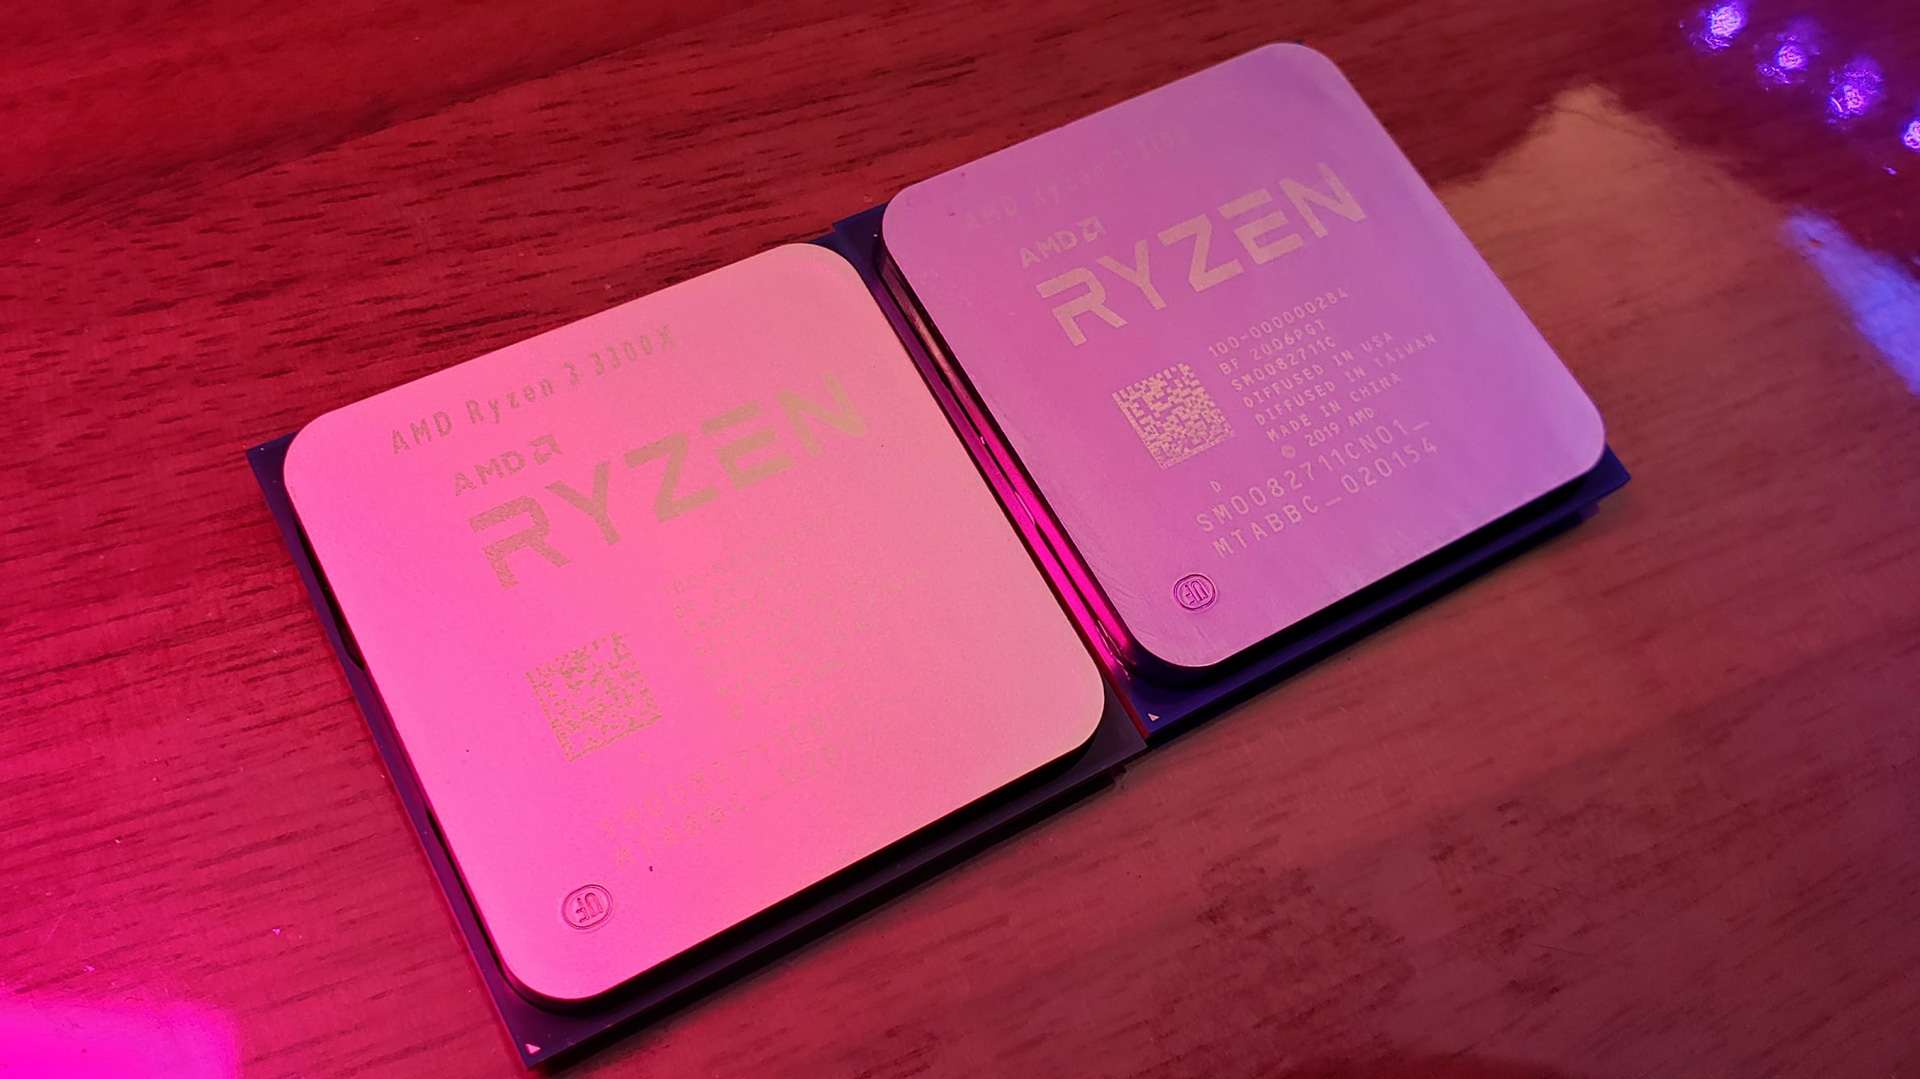 Ryzen 3 3300X and 3100 Pictured